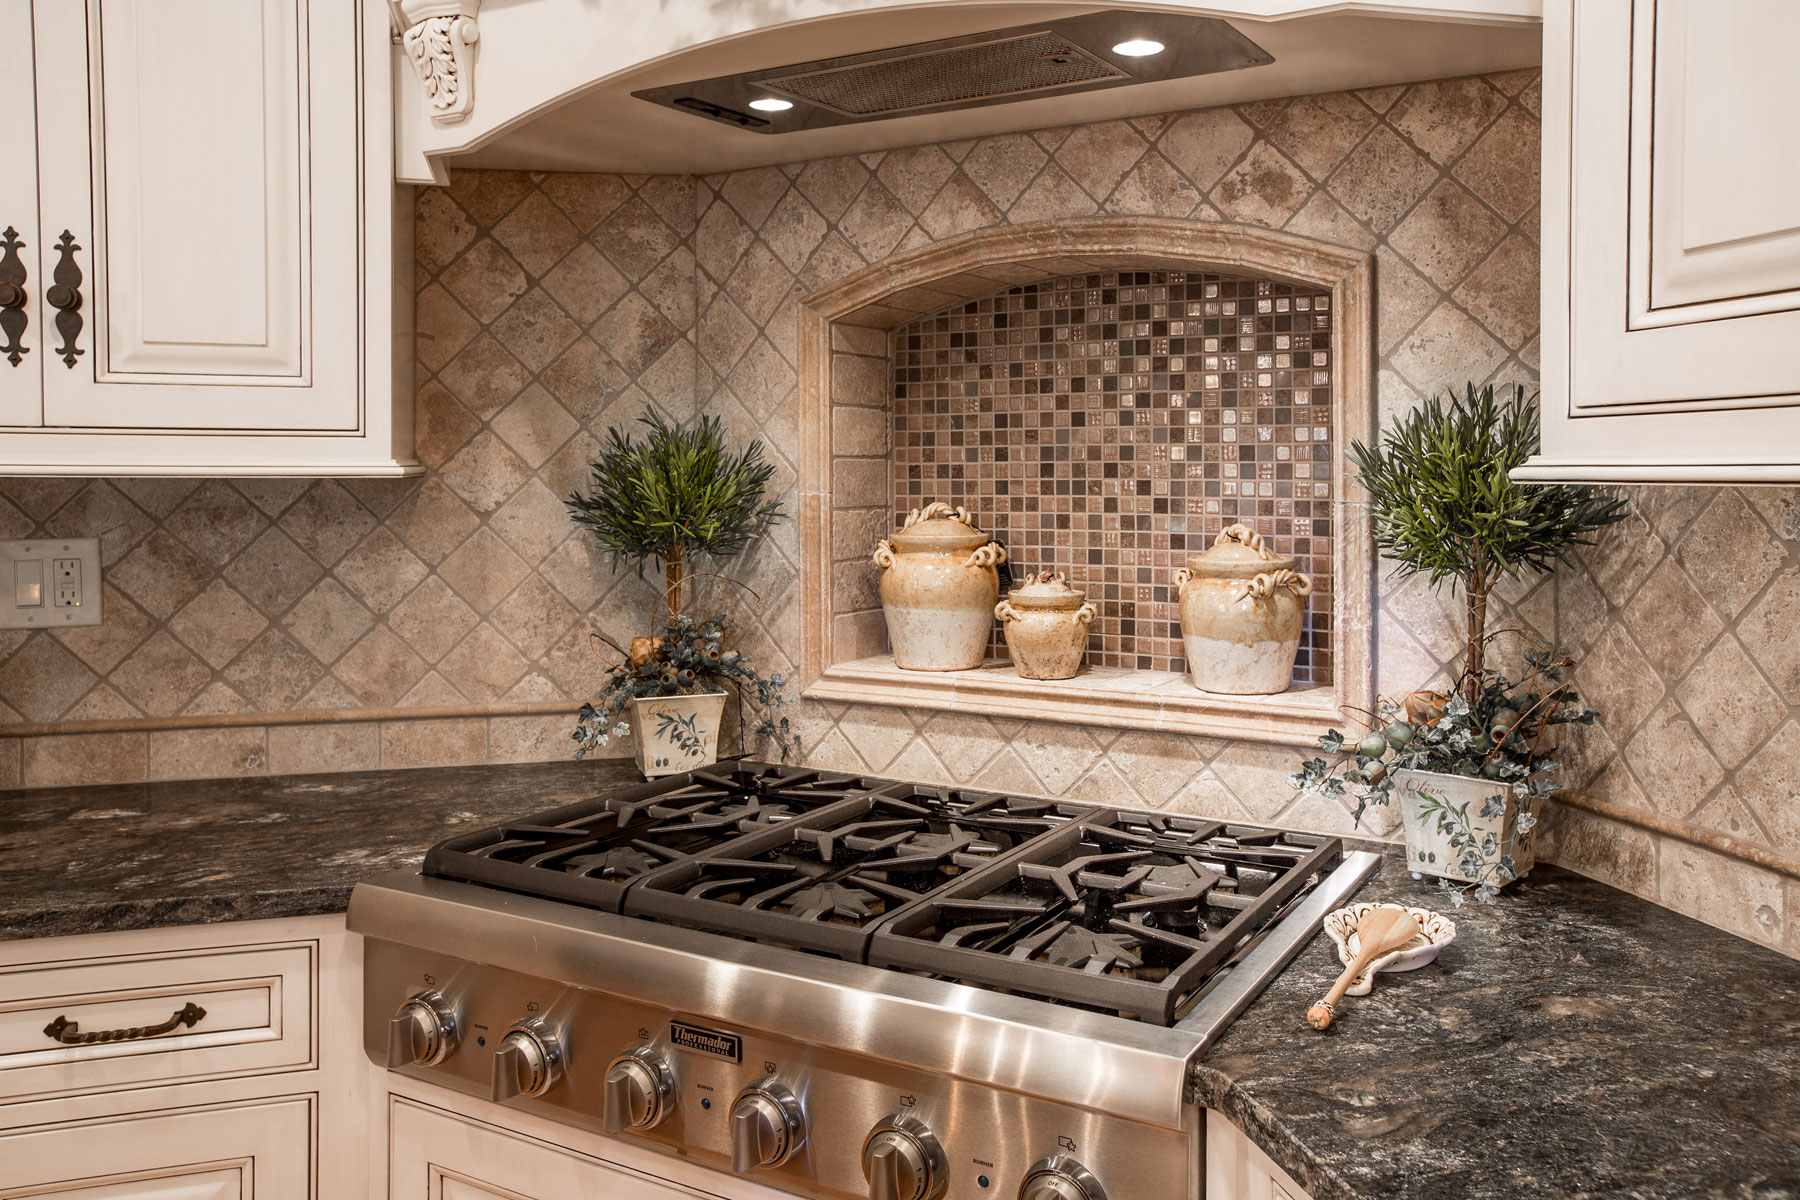 Kitchen Backsplash Decorative Designs